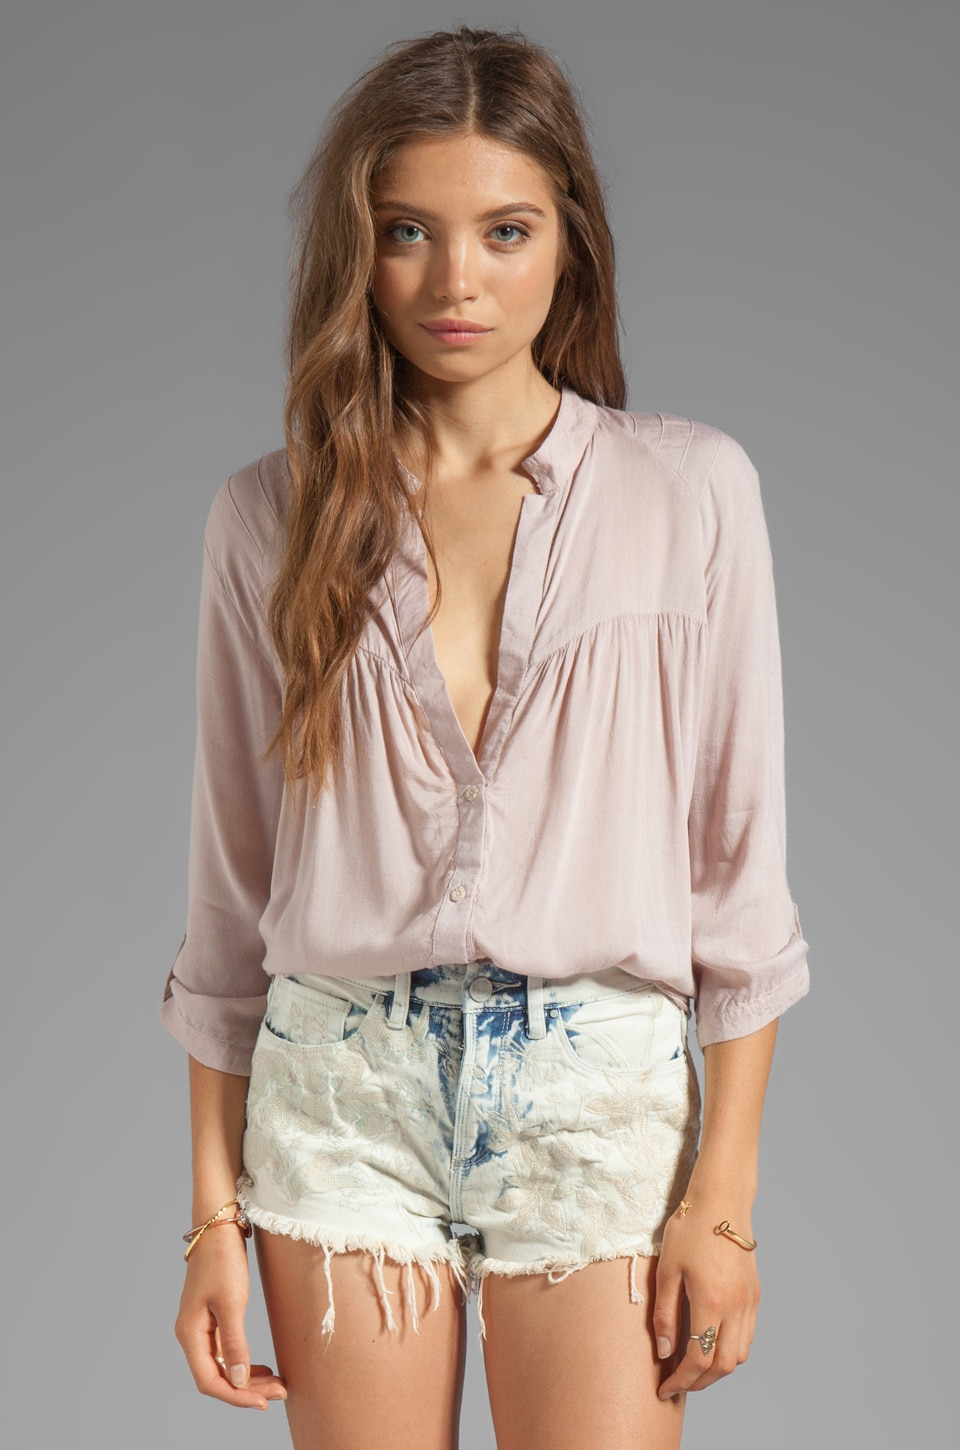 Tiare Hawaii Santorini Eyelet Top in Tan